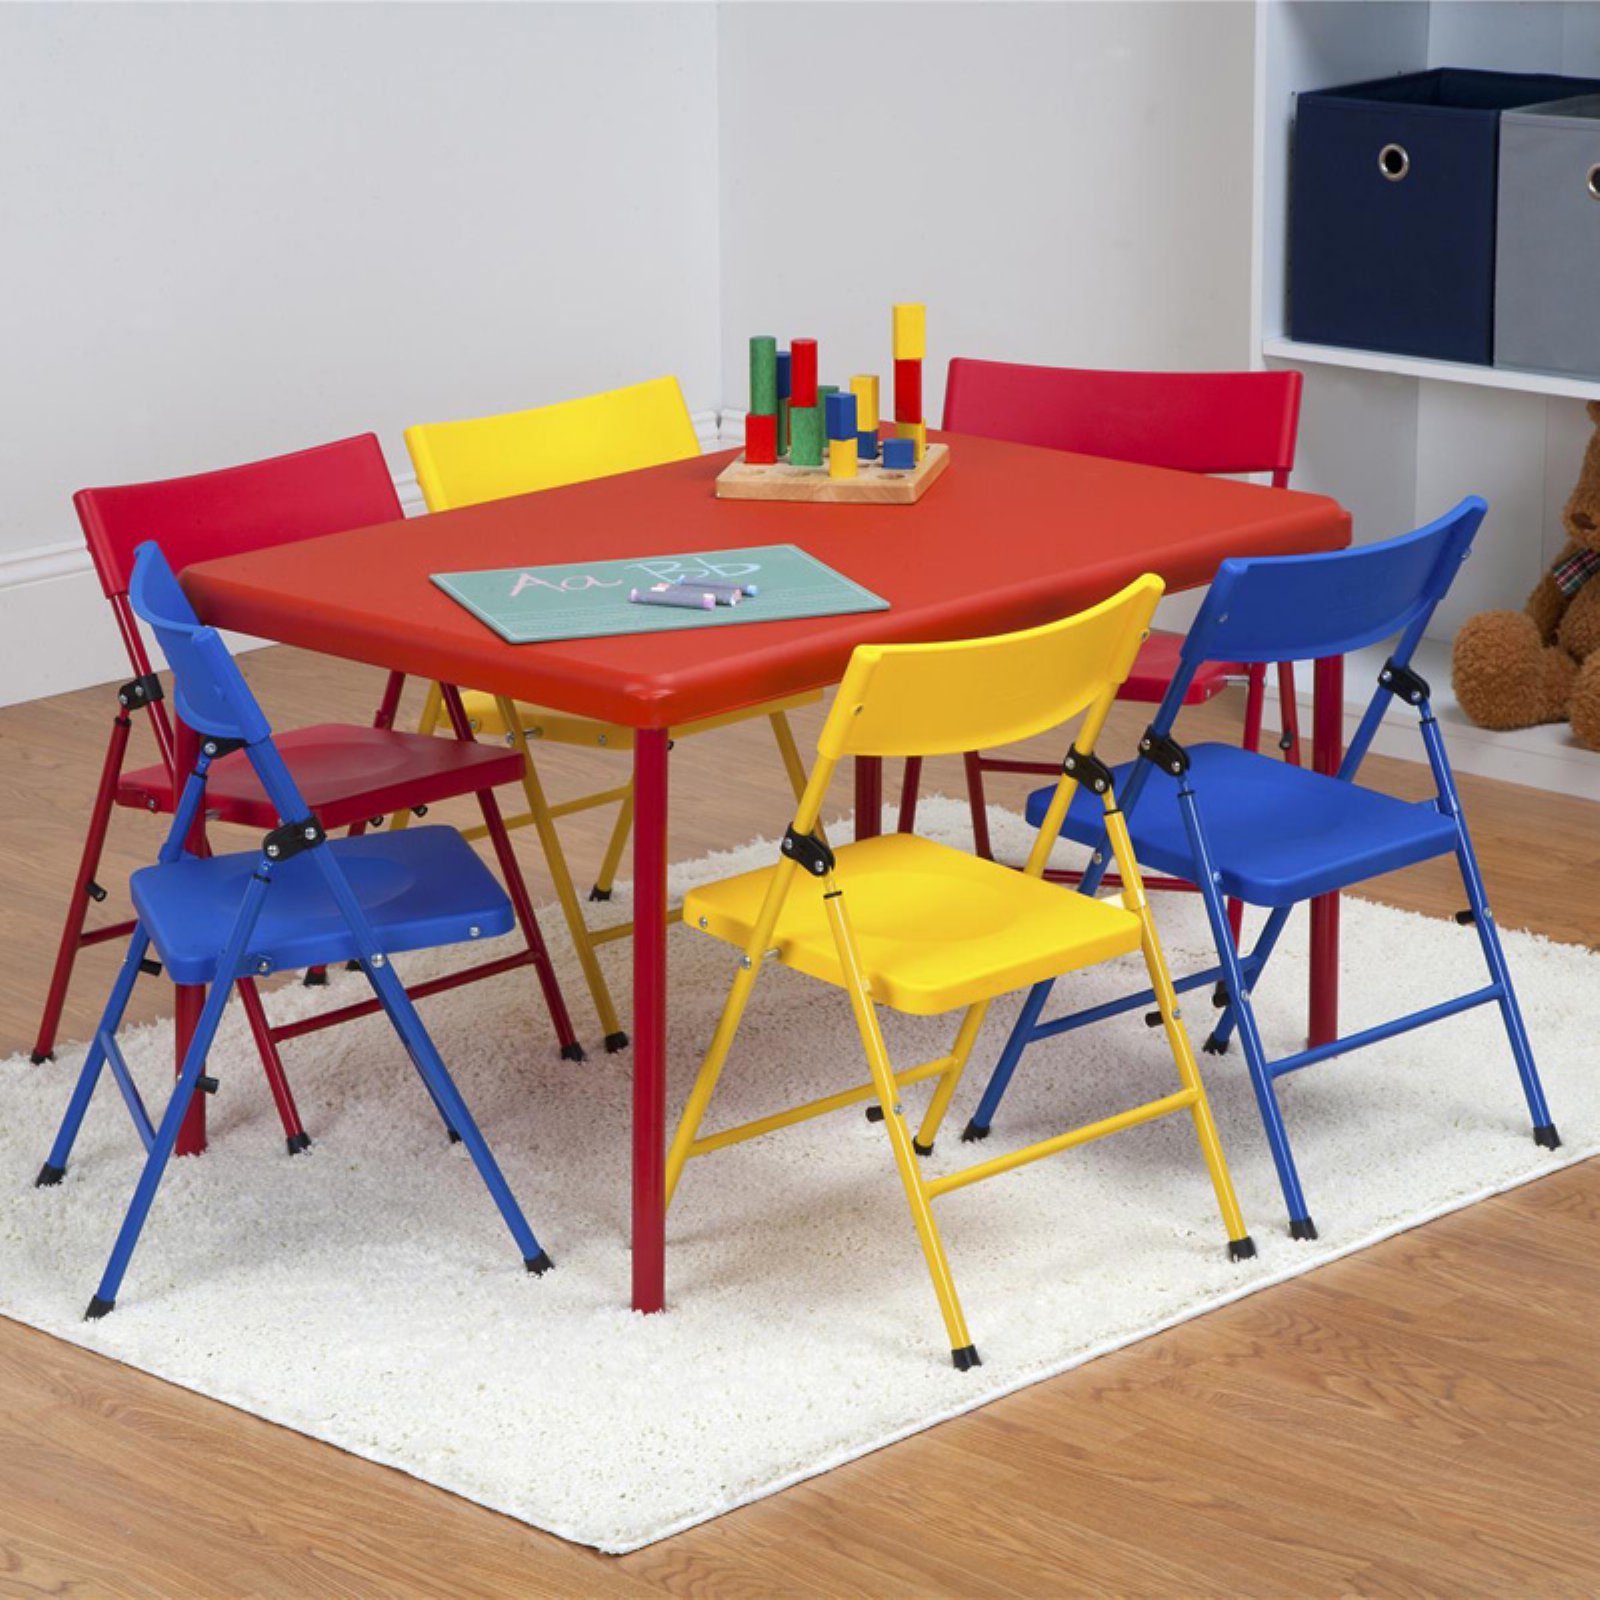 Safety First 7-Piece Kid's Set with Pinch-Free Folding Chairs and Screw-In Legs Table